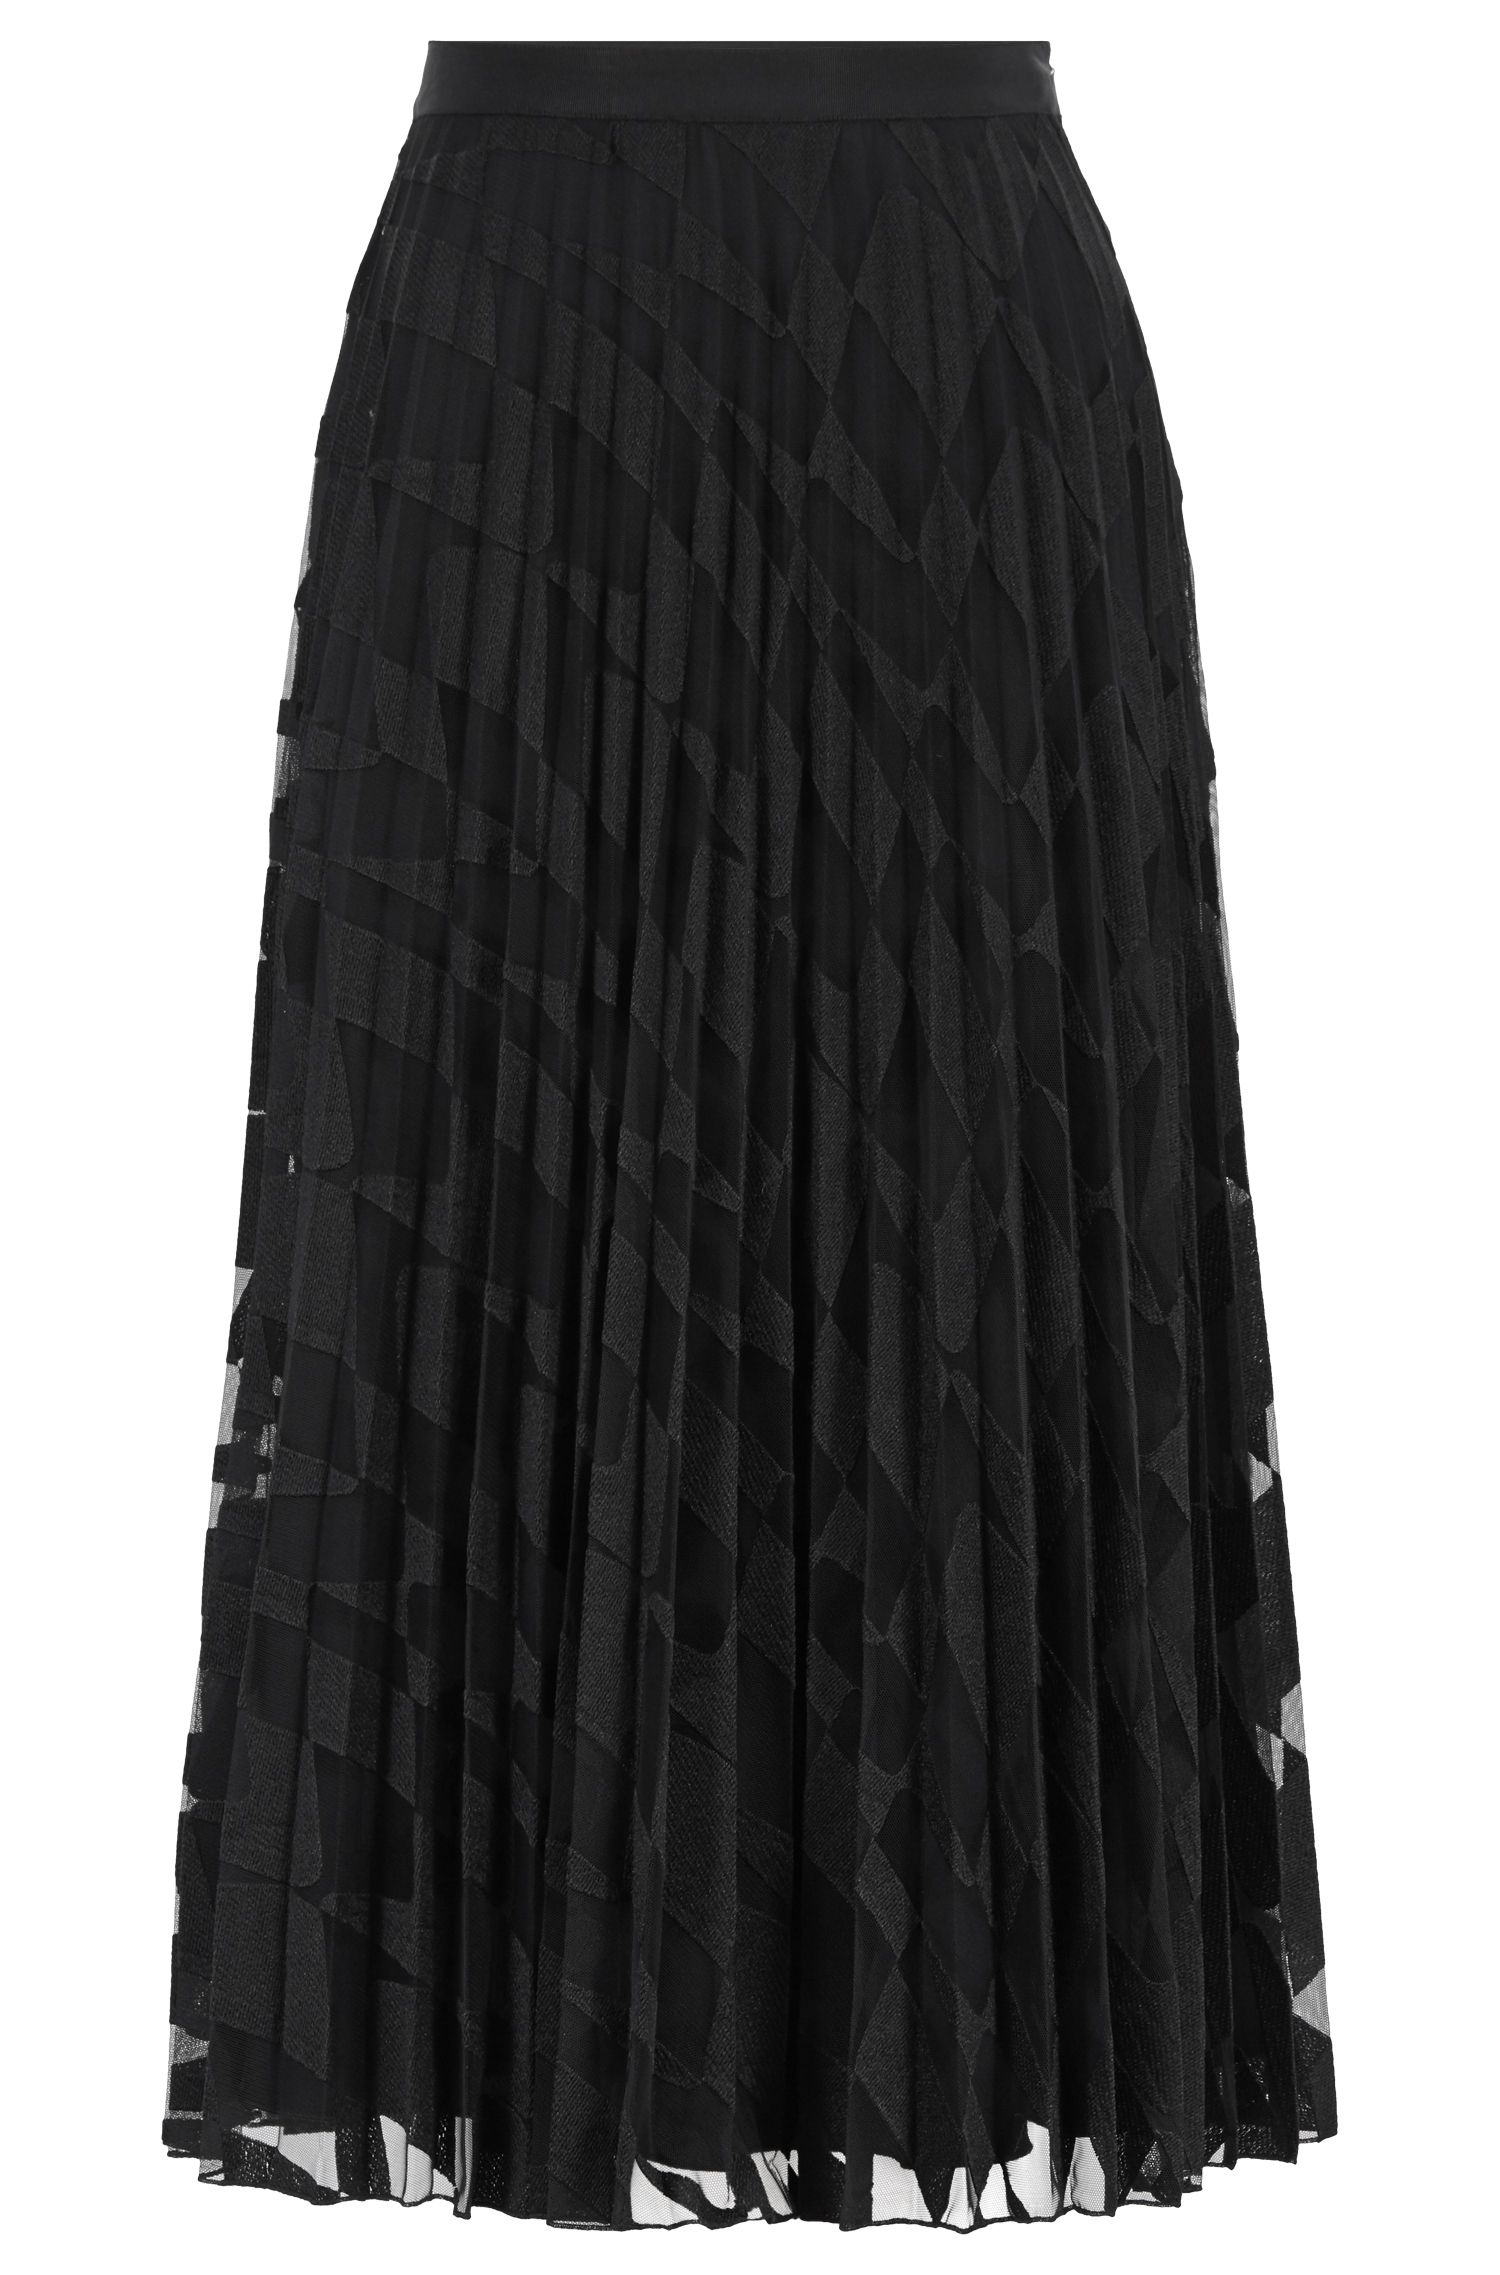 A-line plissé midi skirt in graphic-embroidered tulle, Patterned